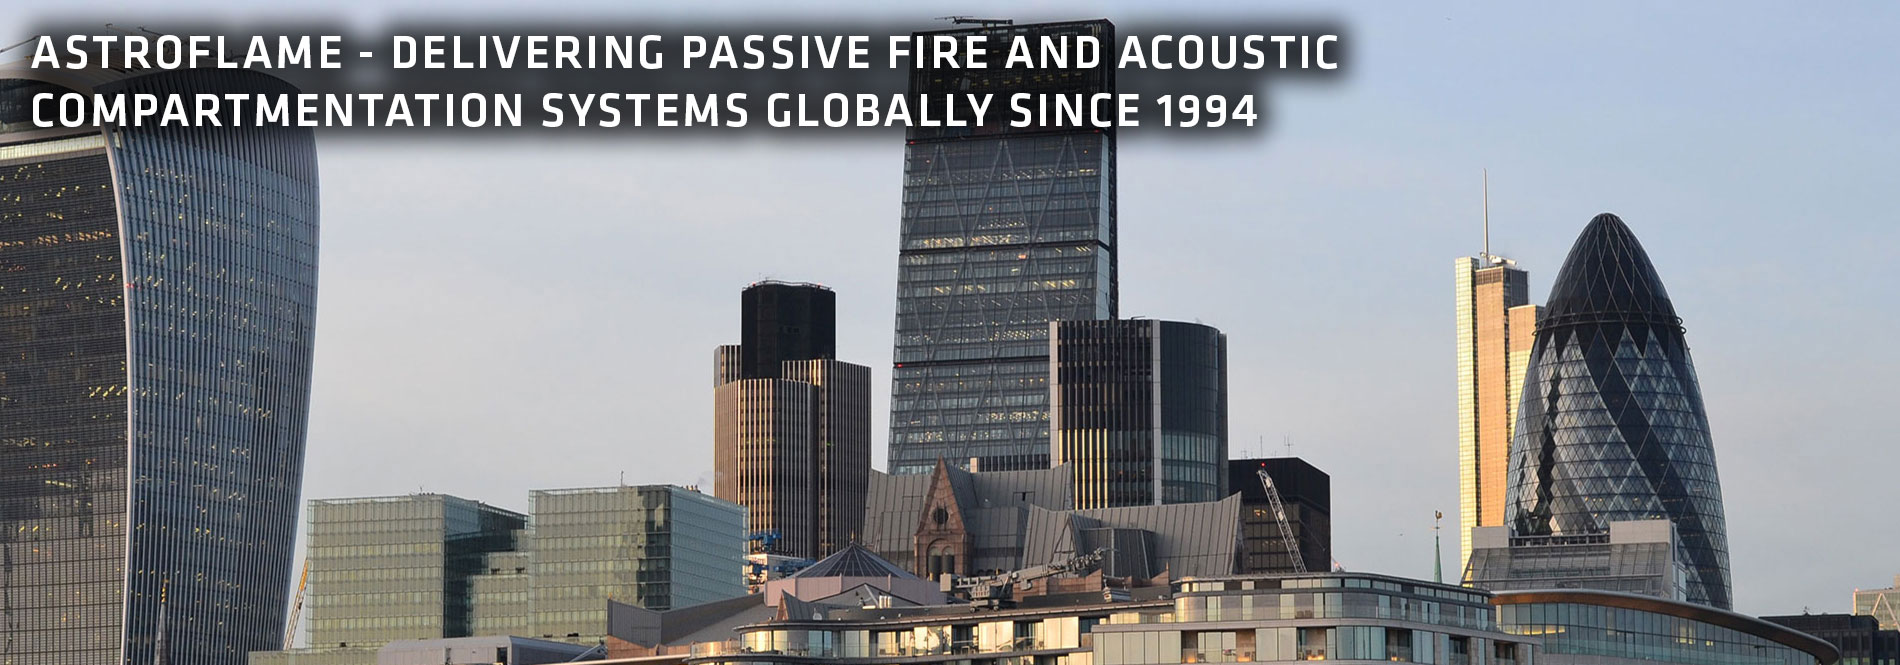 Astroflame Delivering passive fire and acoustic compartmentation systems